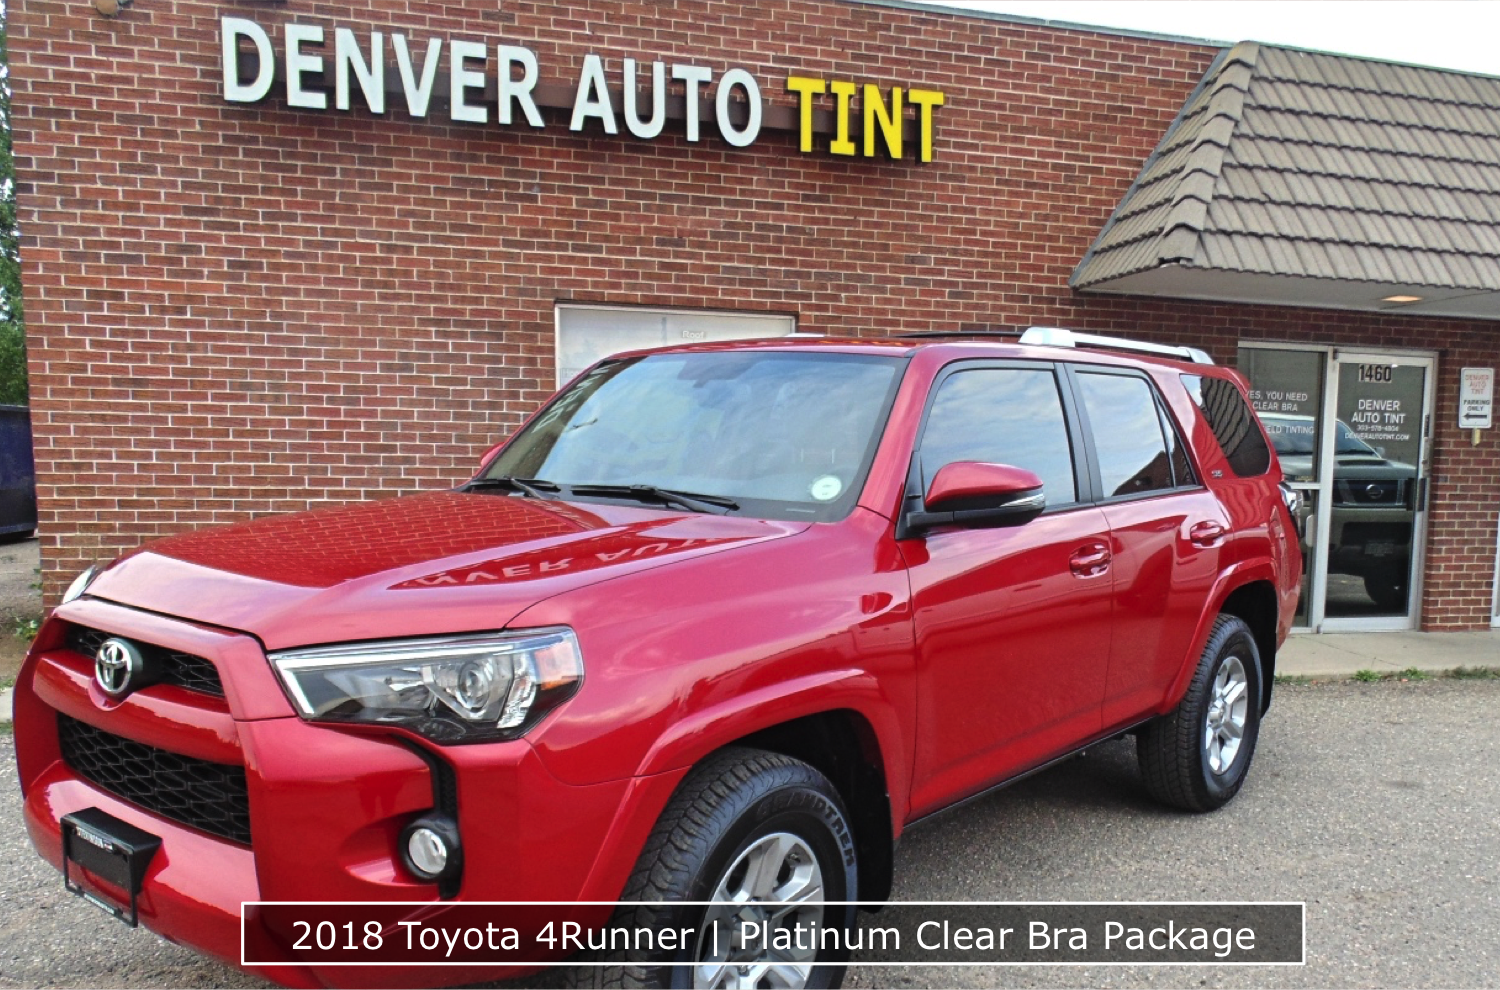 Platinum Clear Bra Package 4Runner